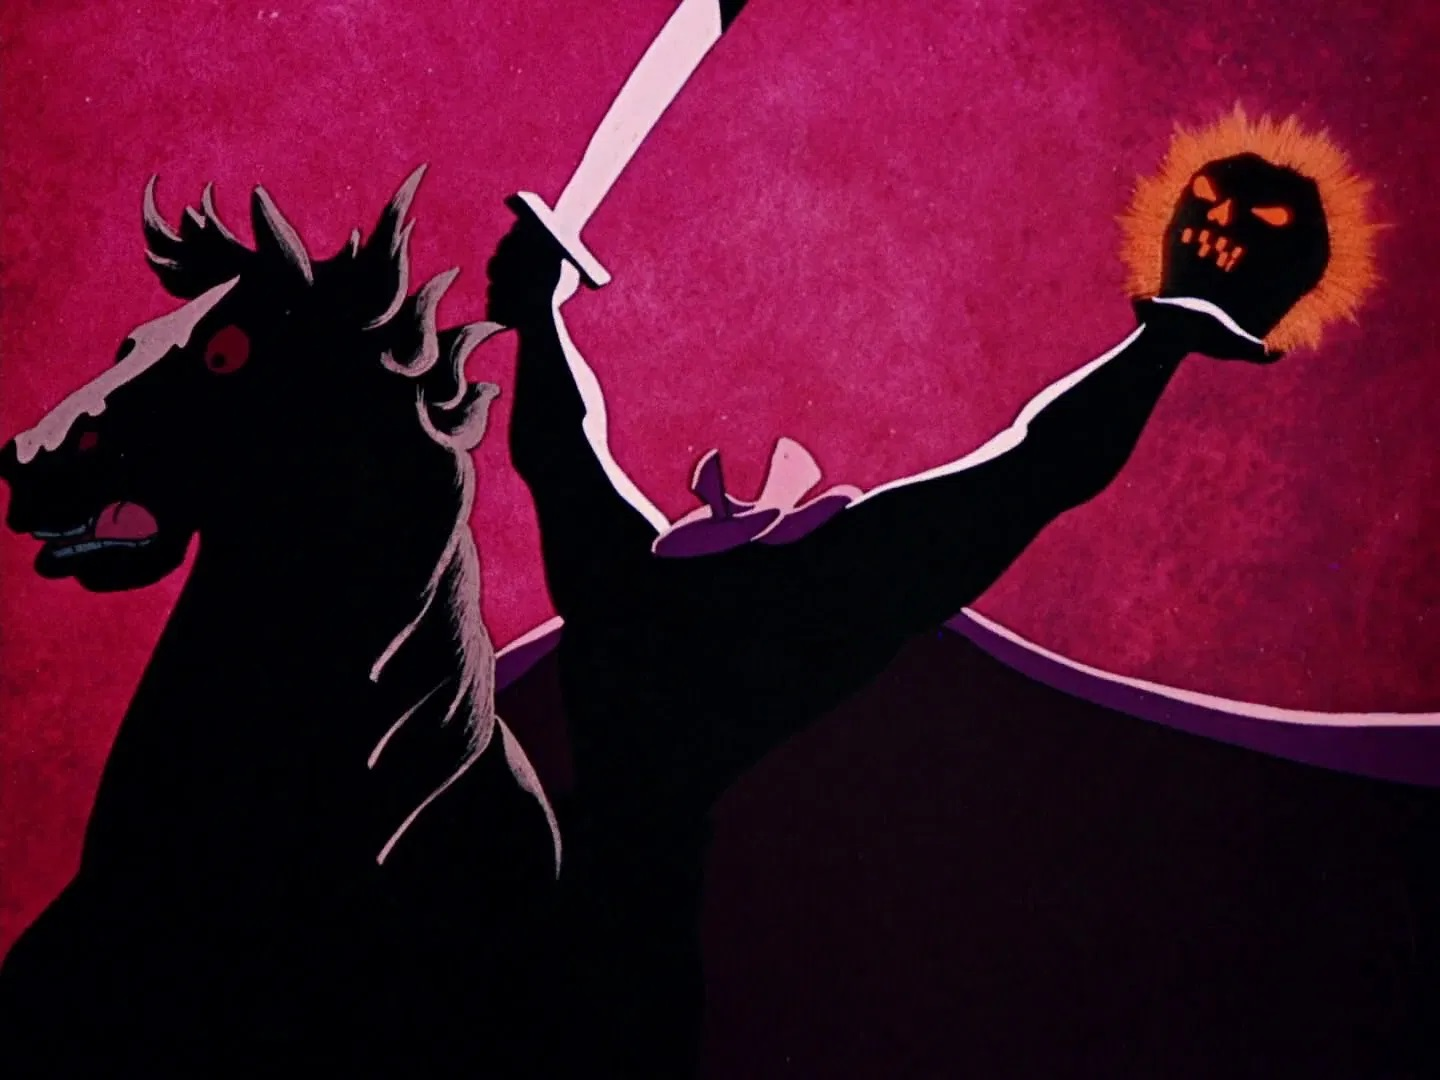 The Headless Horseman | Disney Wiki | FANDOM powered by Wikia Disney Headless Horseman